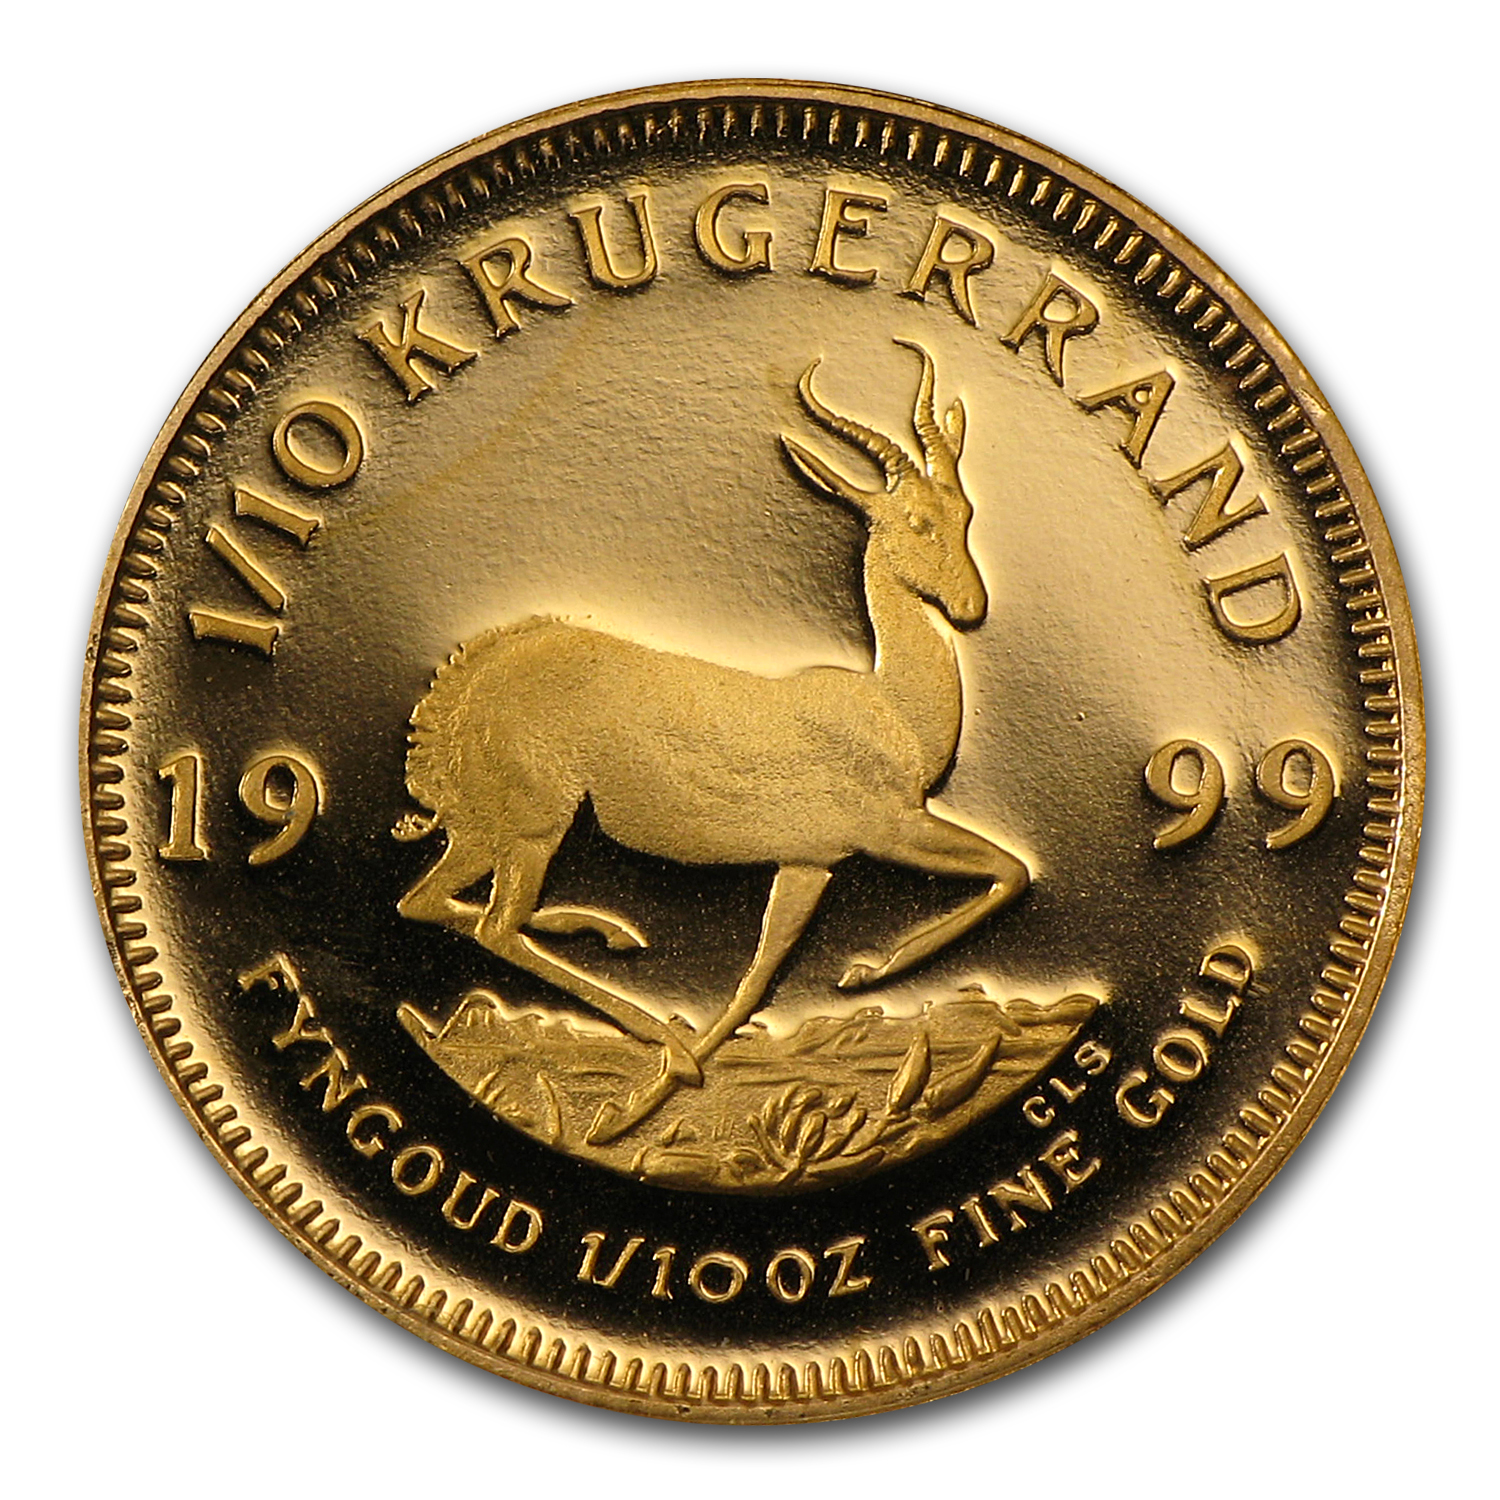 1999 1/10 oz Gold South African Krugerrand (Proof)